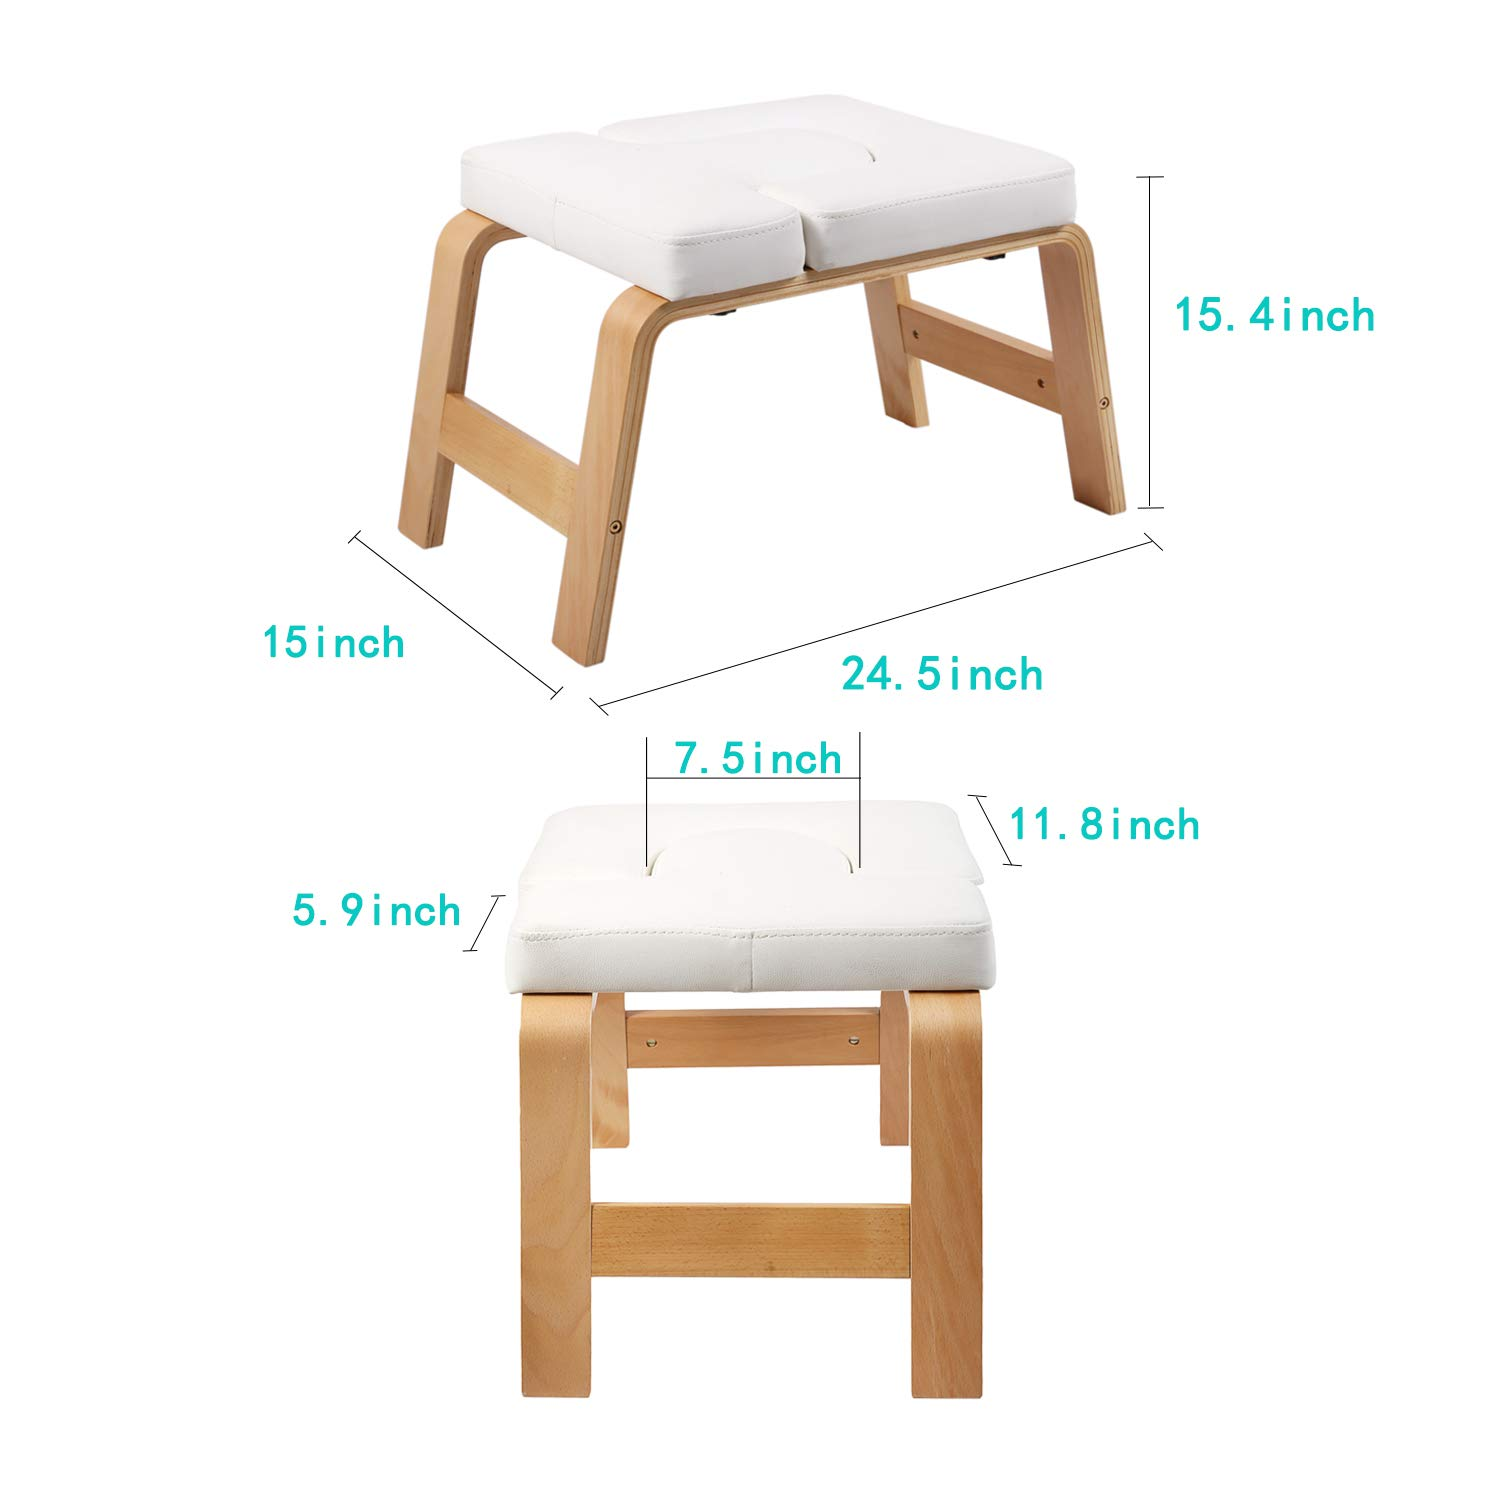 Desire Life Yoga Headstand Bench - Stand Yoga Chair for Family, Gym - Wood and PU Pads - Relieve Fatigue and Build Up Body (White) by Desire Life (Image #3)